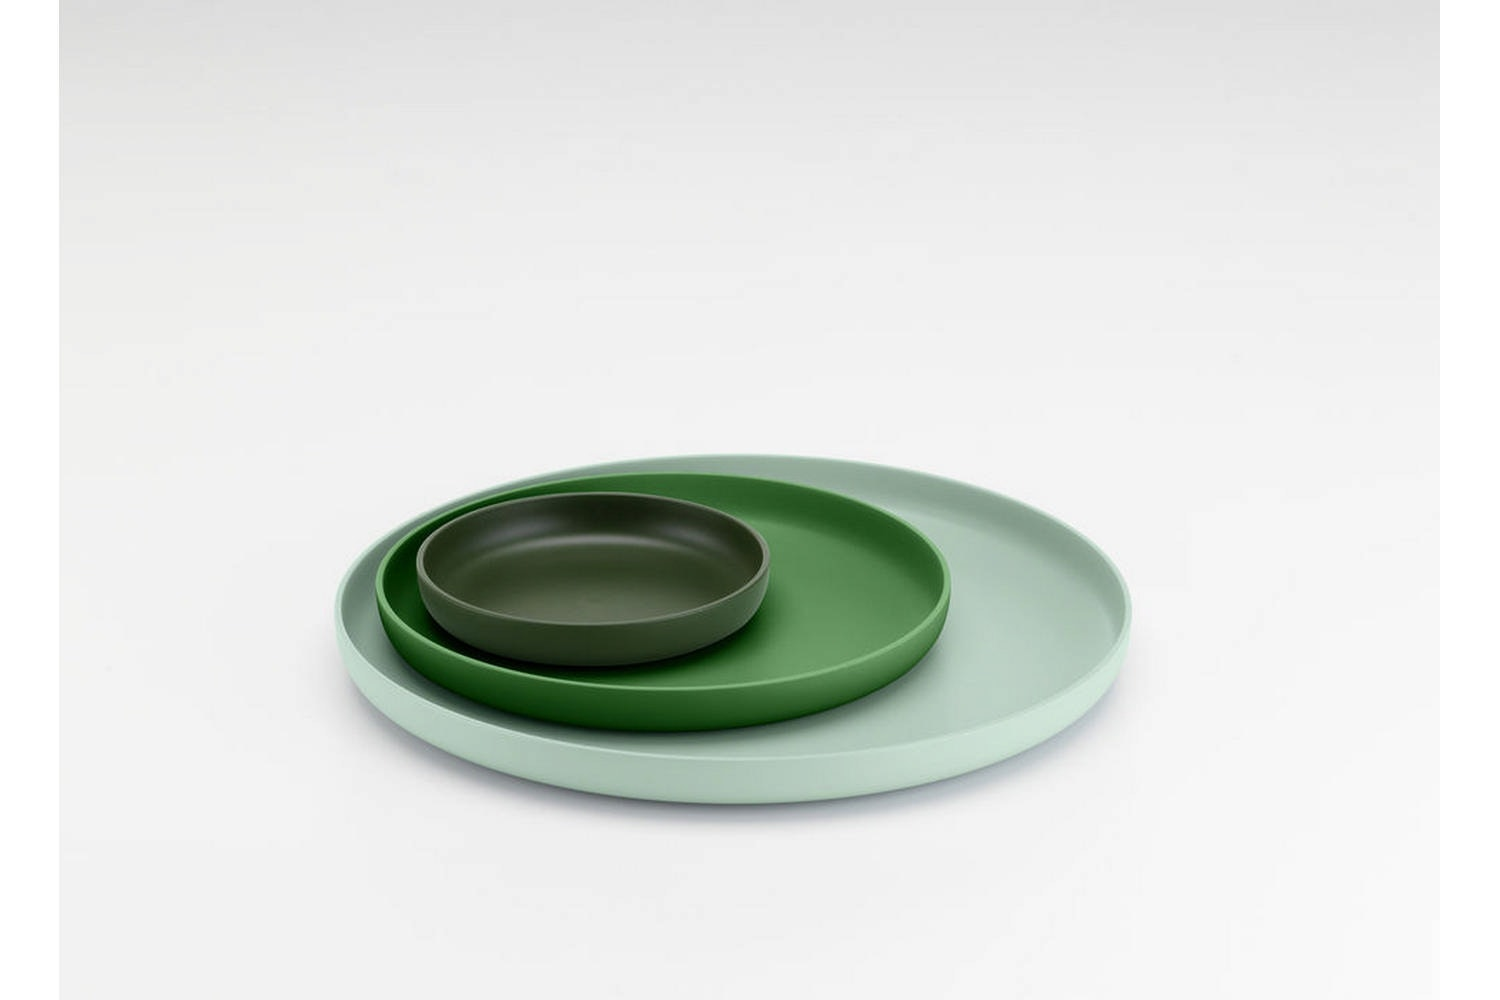 Trays by Jasper Morrison for Vitra